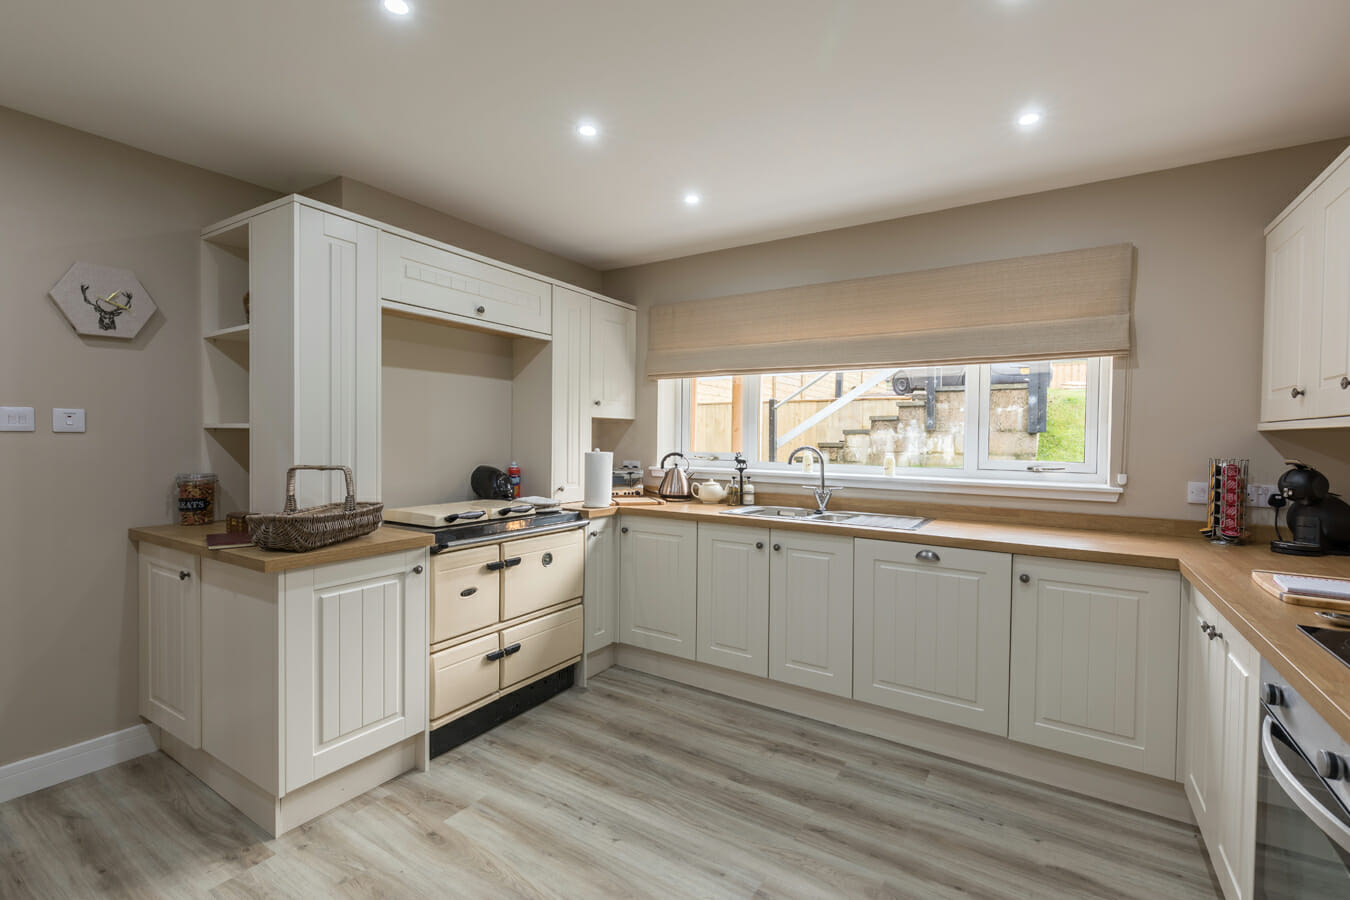 Kitchen roy 39 s croft for Roy s country kitchen